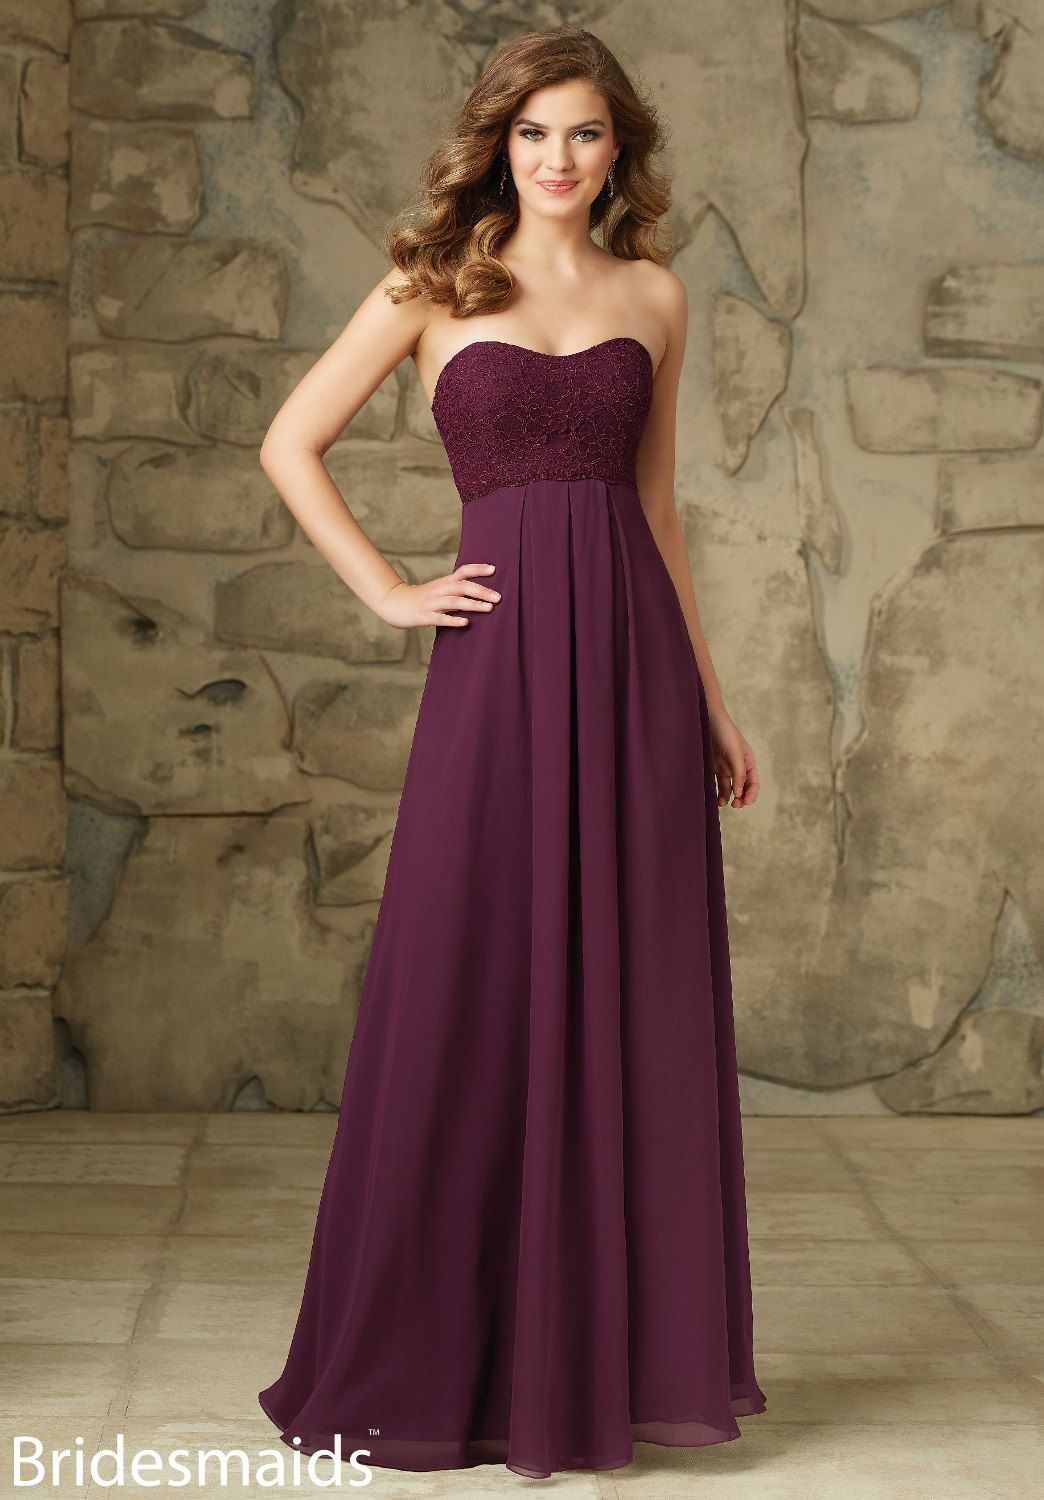 03fe93e3ca View Dress - Mori Lee BRIDESMAIDS FALL 2015 Collection: 107 - Lace and  Chiffon | MoriLee Evening,Prom,Bridesmaids